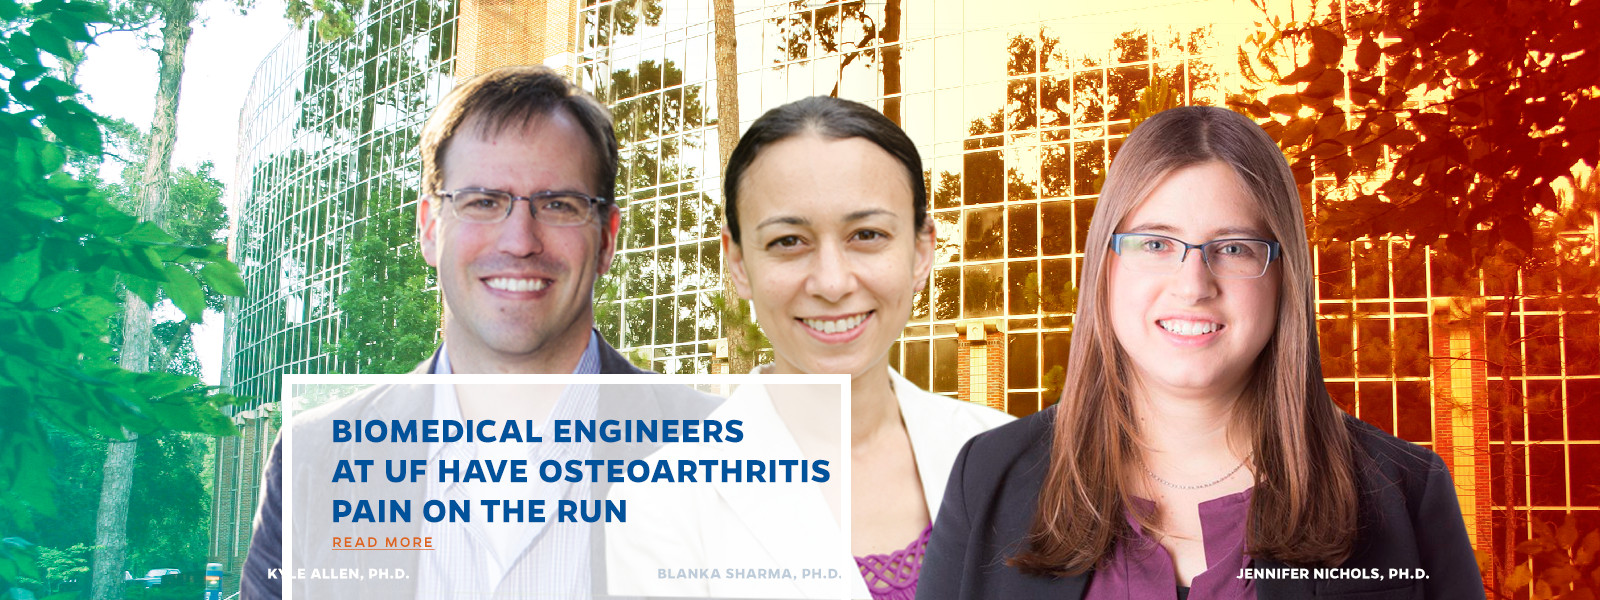 BIOMEDICAL ENGINEERS AT UF HAVE OSTEOARTHRITIS PAIN ON THE RUN